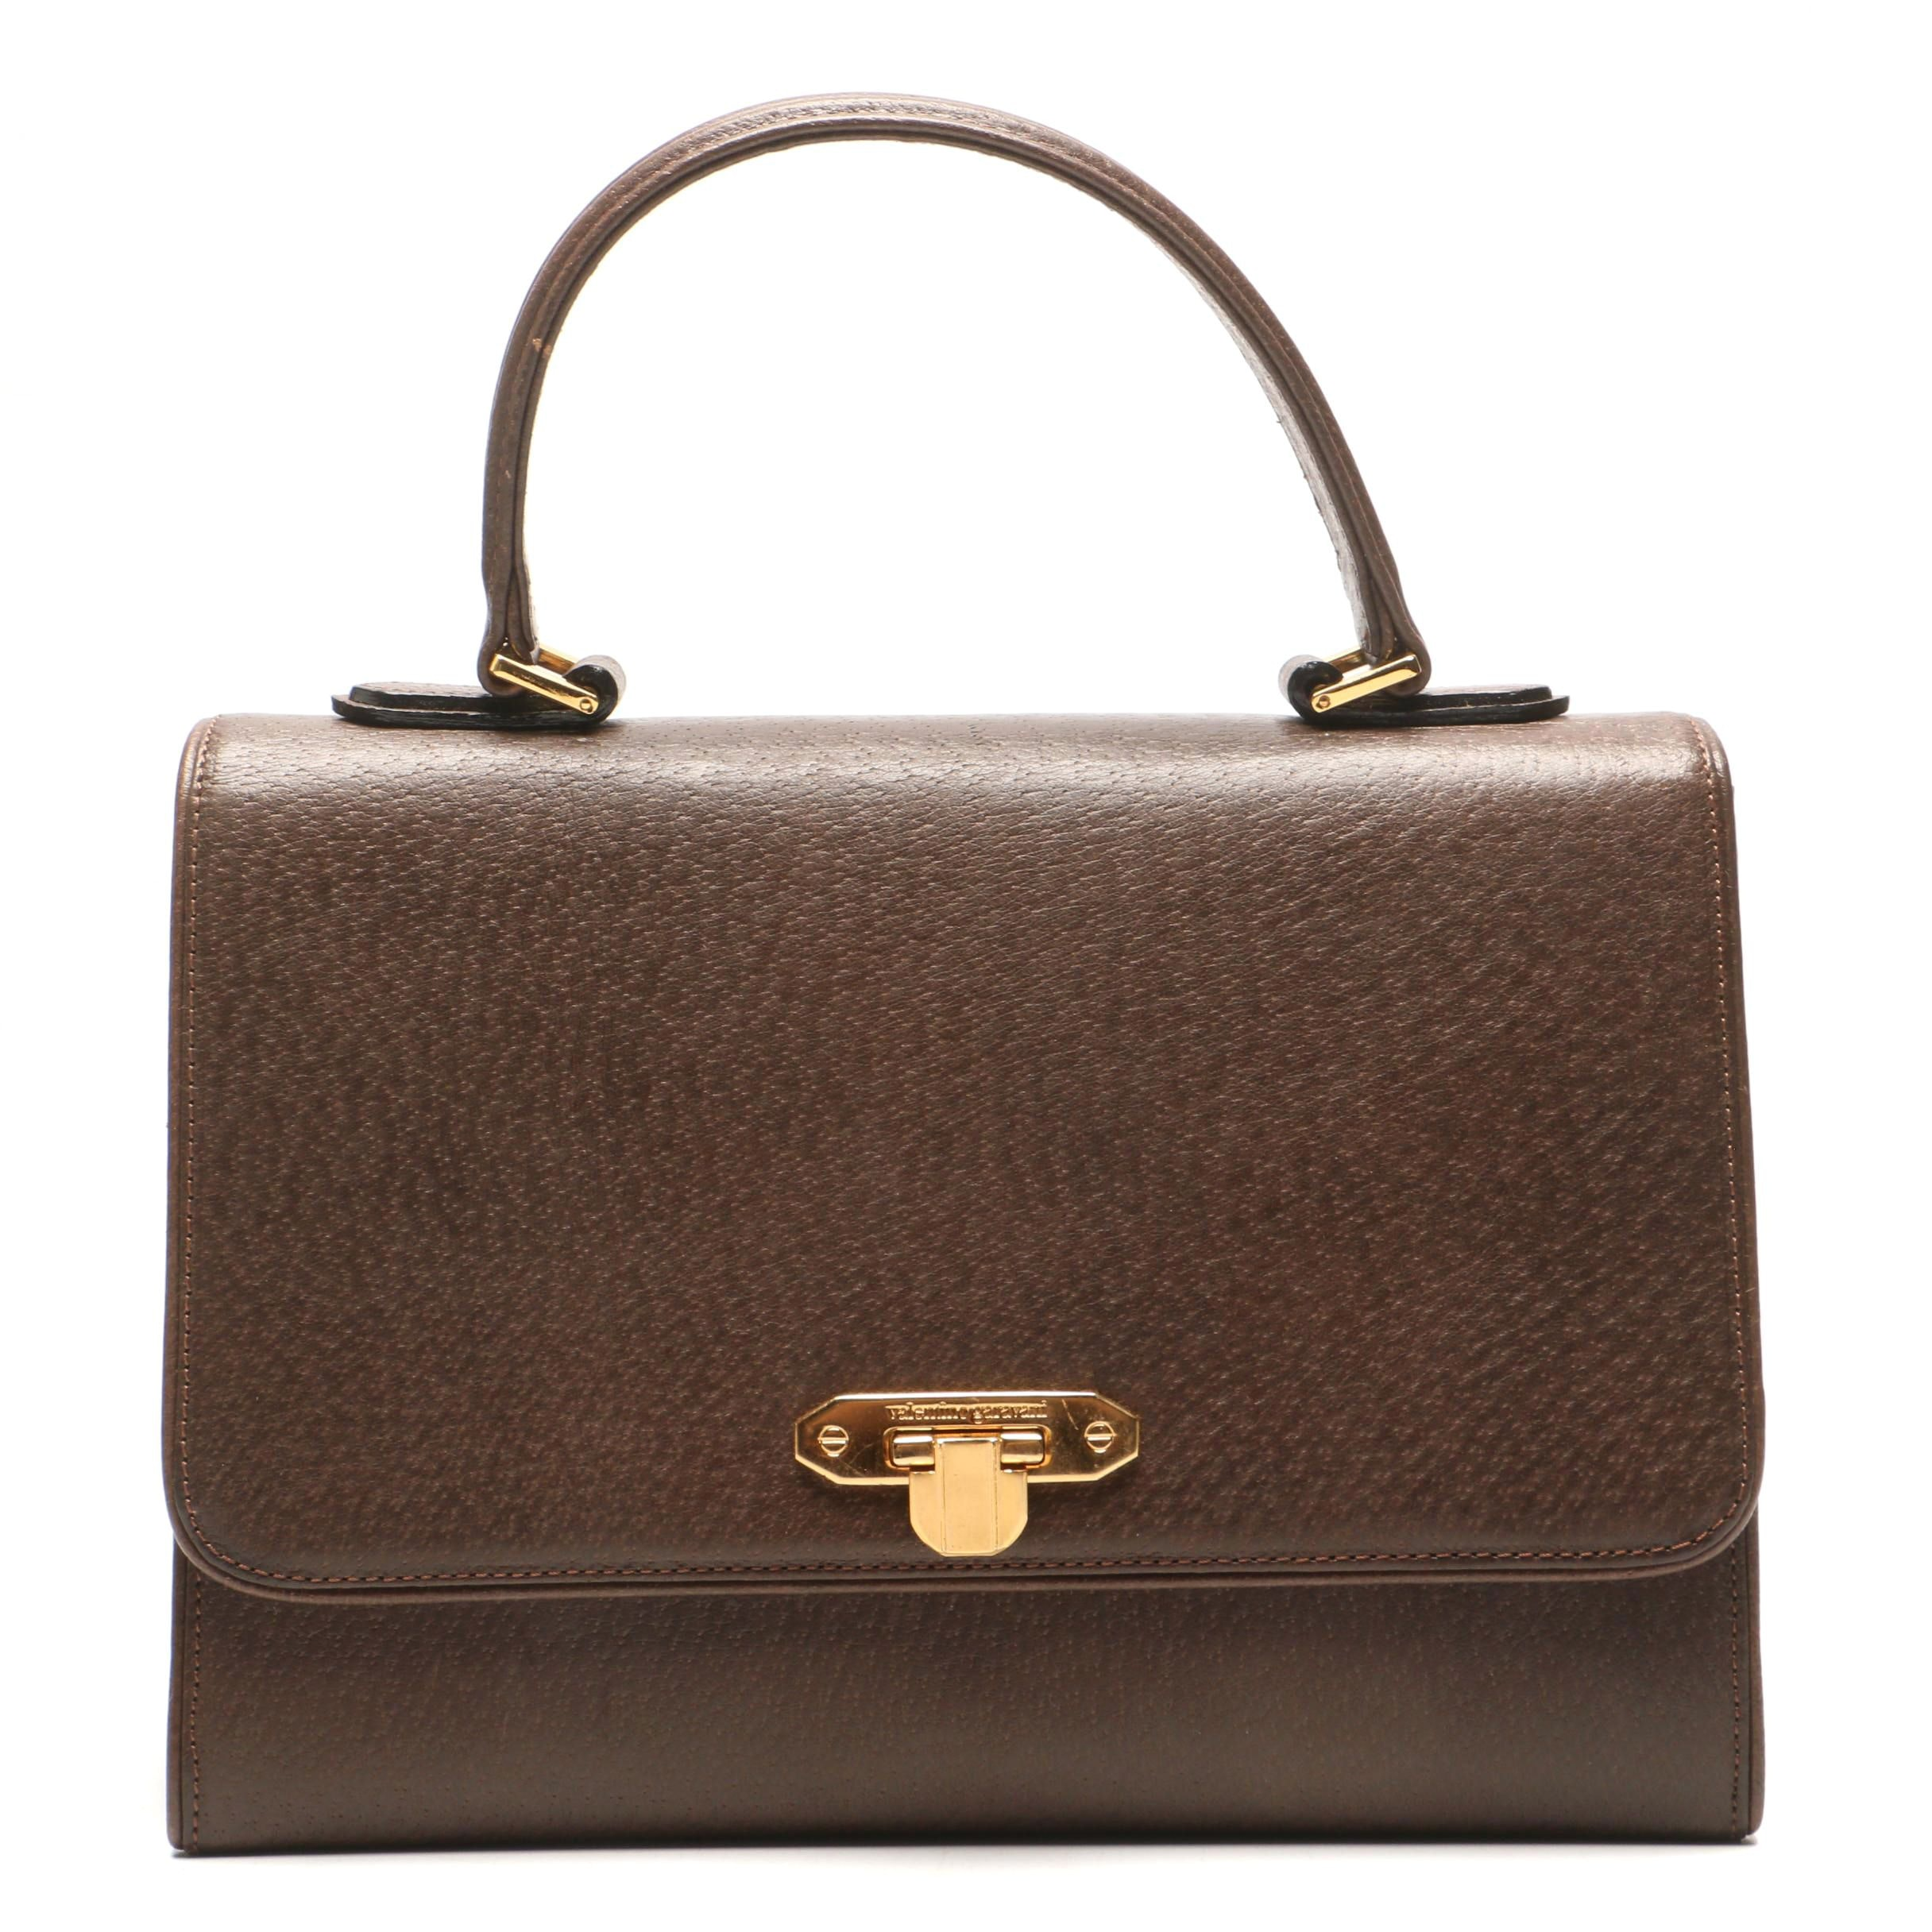 Valentino Garavani Brown Leather Satchel, Vintage